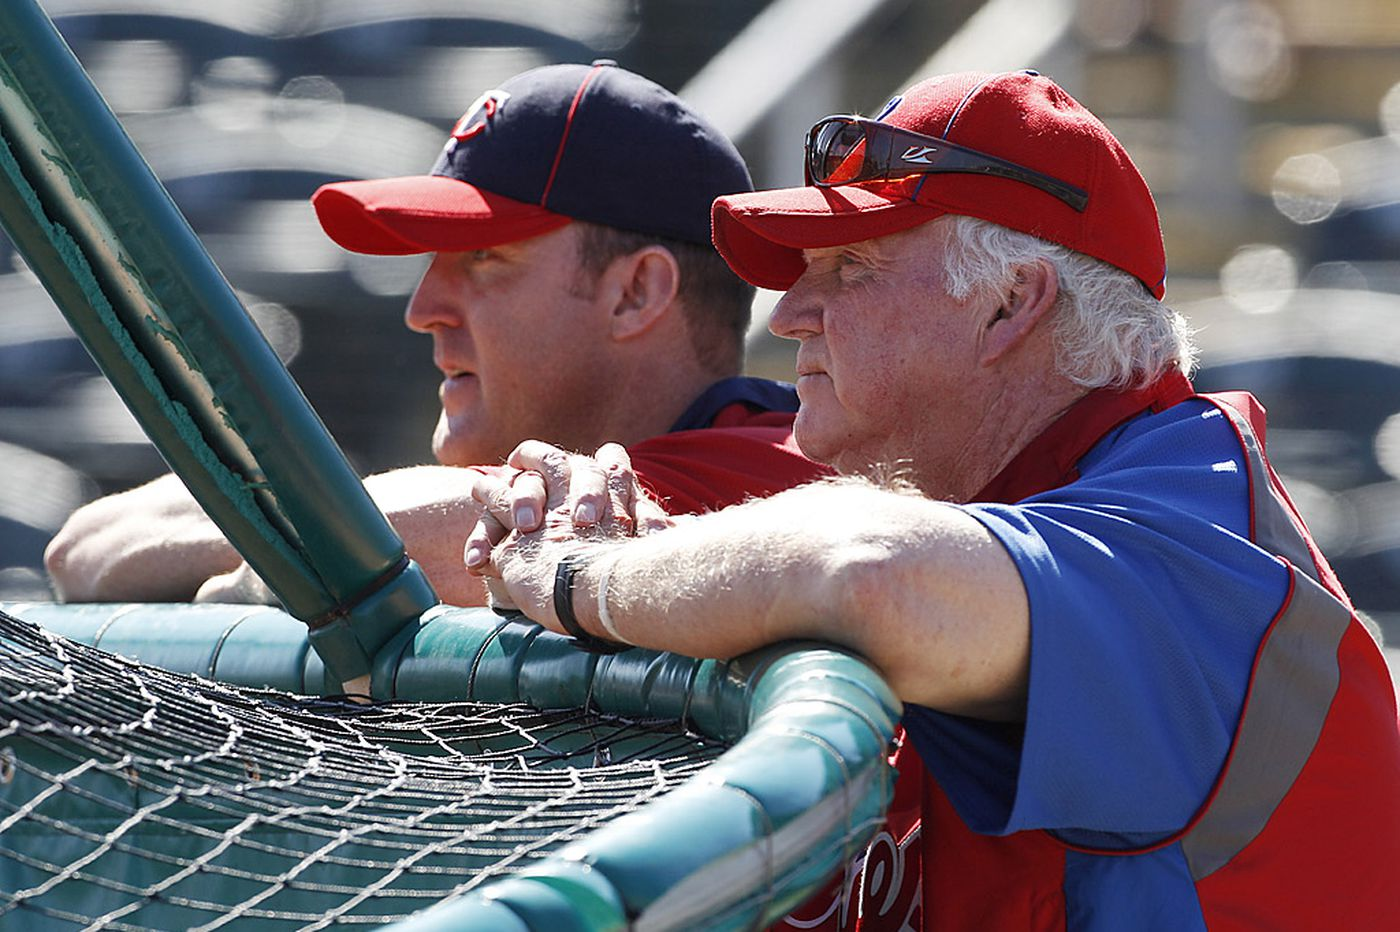 Former Phillies manager Charlie Manuel to serve as Jim Thome's bench coach at annual Futures Game